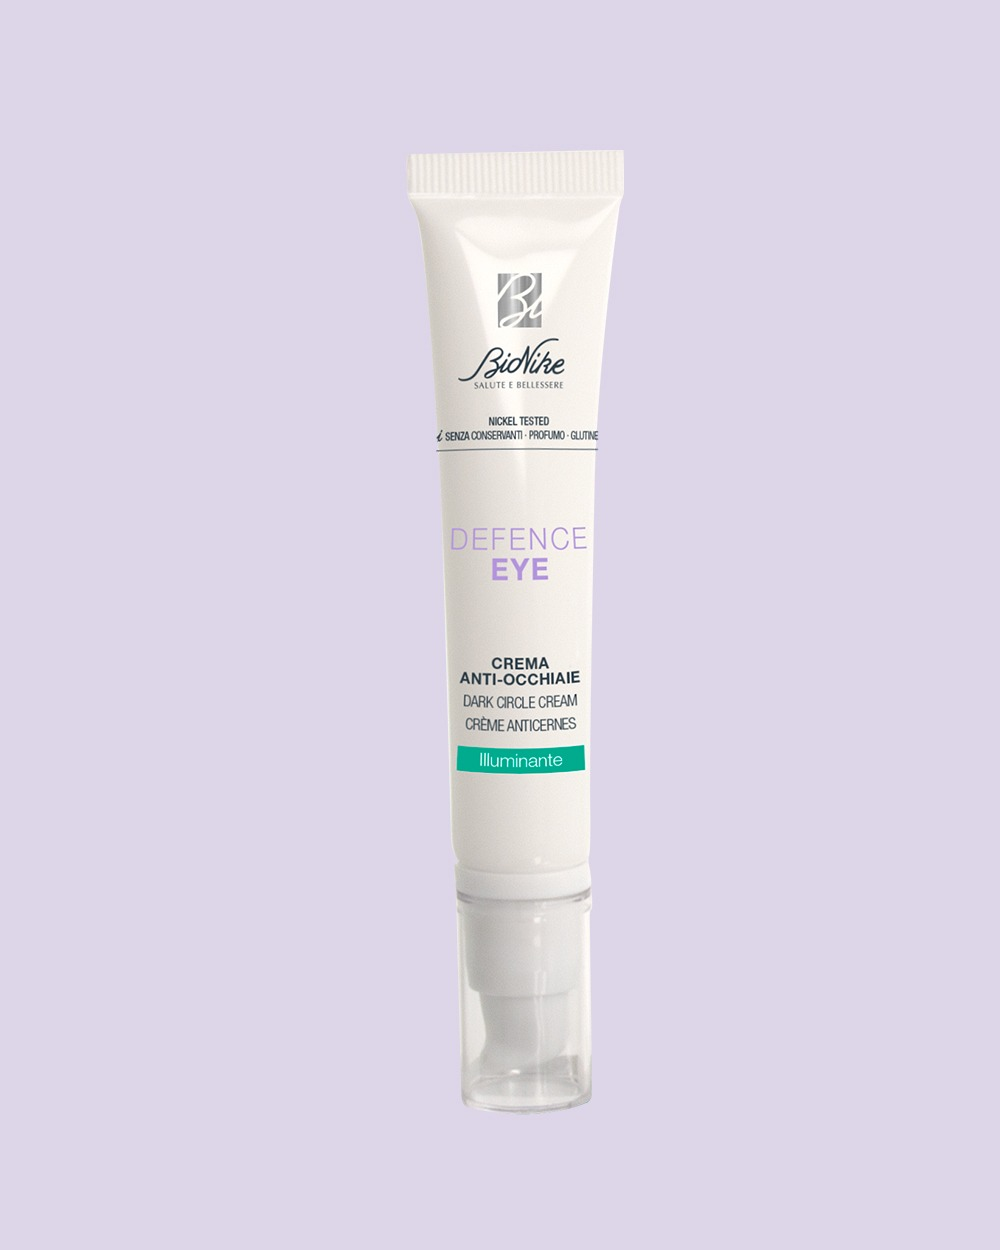 DEFENCE EYE CREMA ANTI-OCCHIAIE